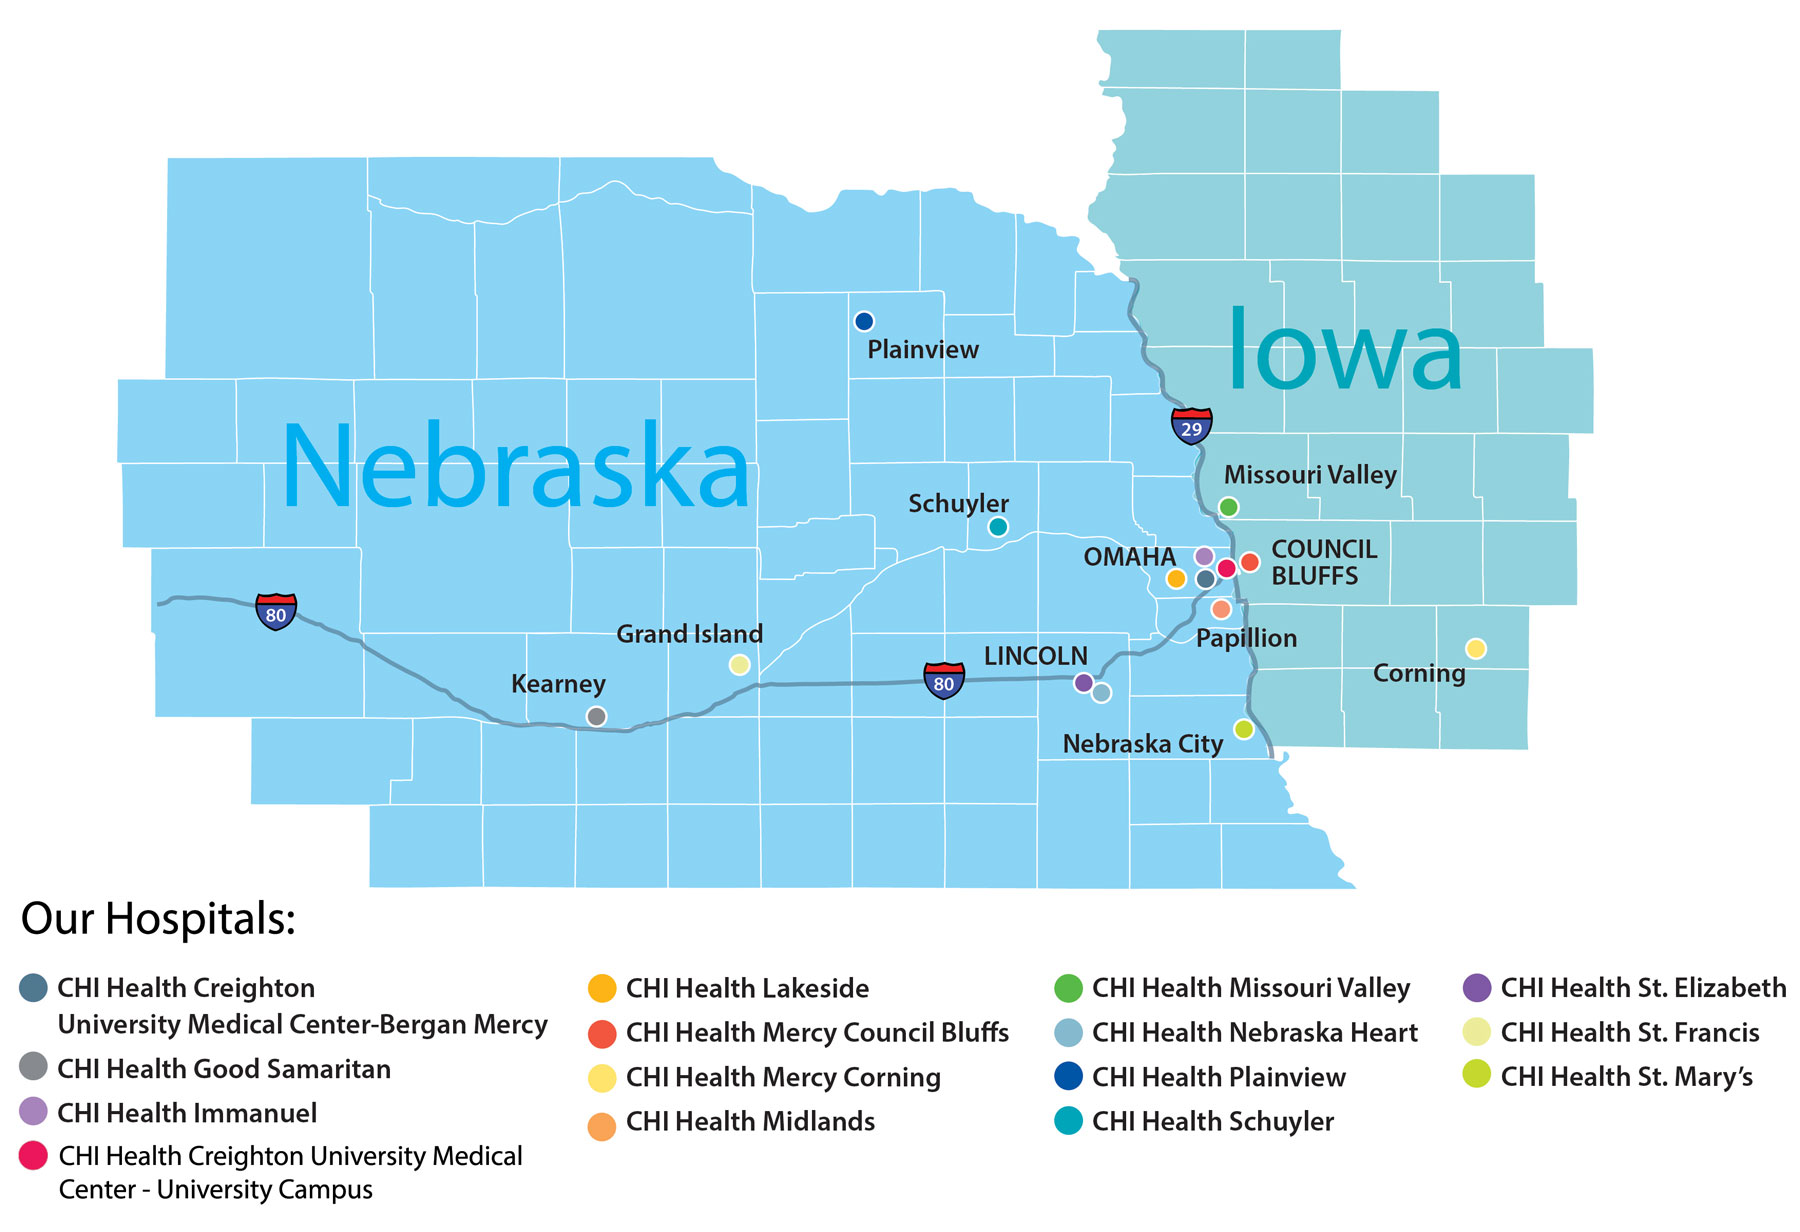 Map of CHI Health Hospitals across the state